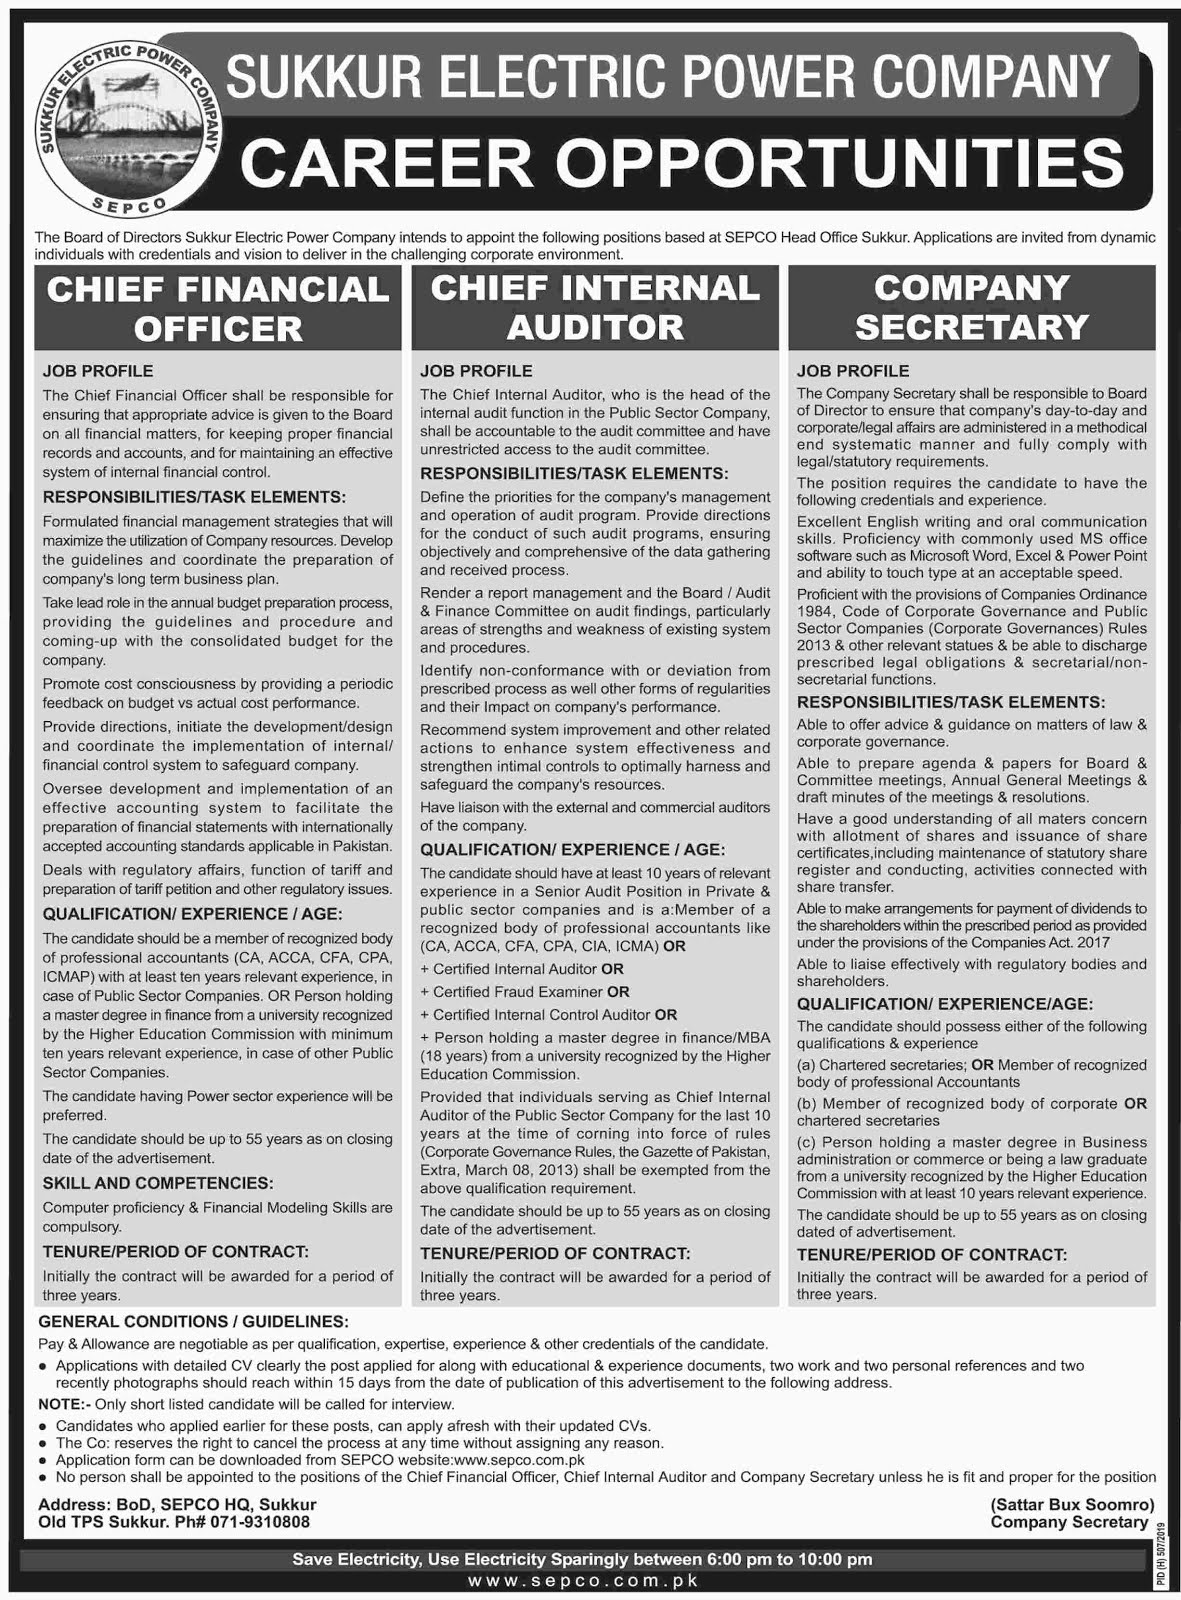 Sukhur Electric Power Supply Company Jobs For Chief Financial officer, Chief Internal Auditor and Others Jobs 2019 (3008 Posts)